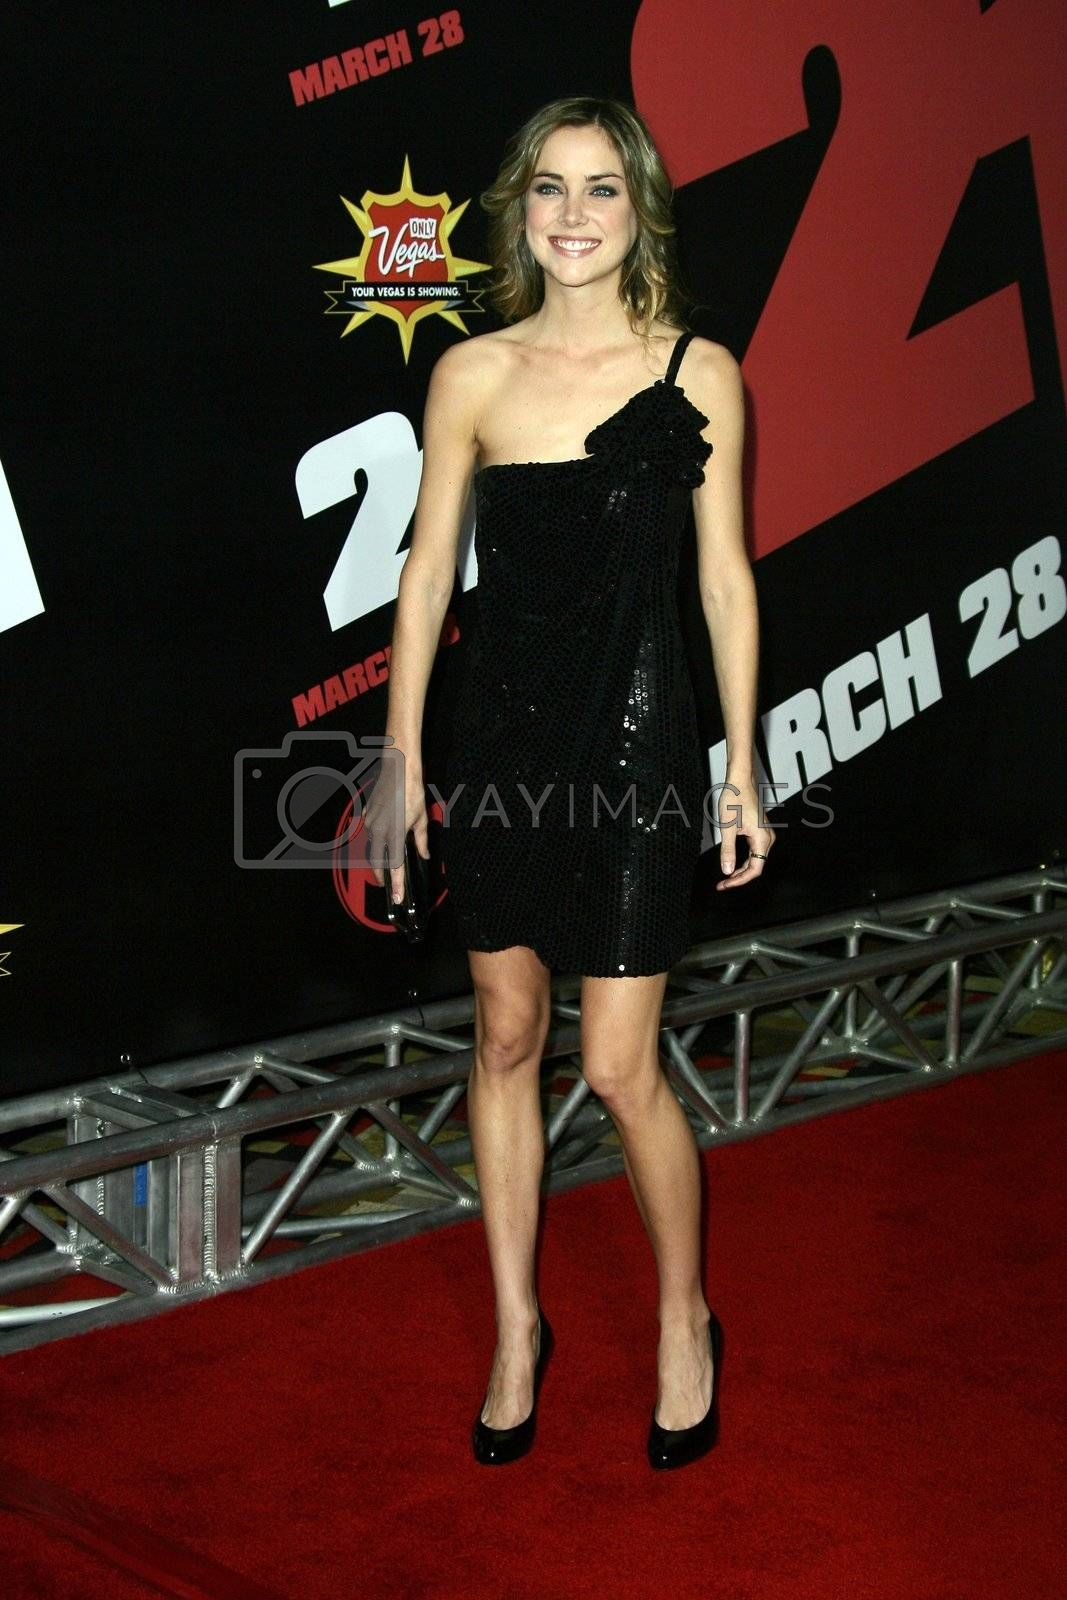 US premiere of '21' held at Planet Hollywood Hotel and Casino in Las Vegas - 12 March 2008